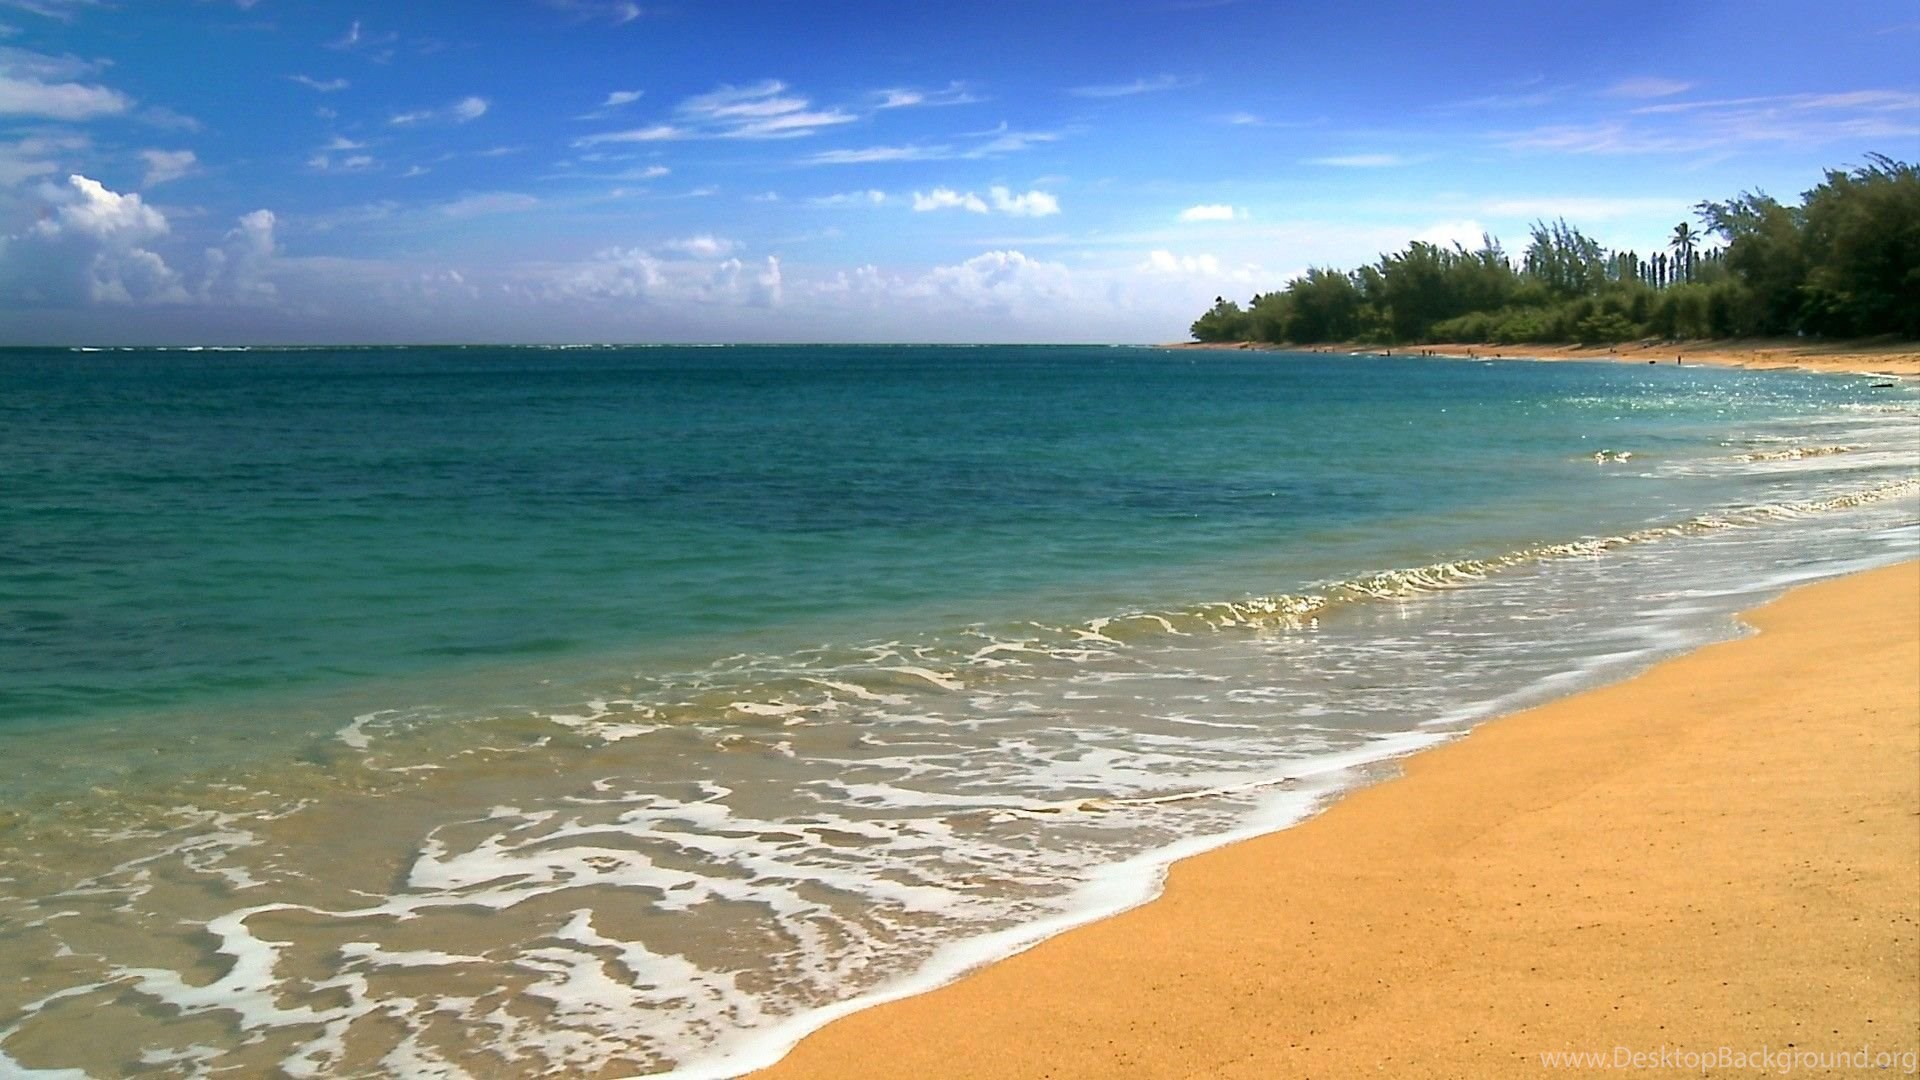 Hawaii beach scene 1920x1080 hd wallpapers and free stock photo popular voltagebd Image collections